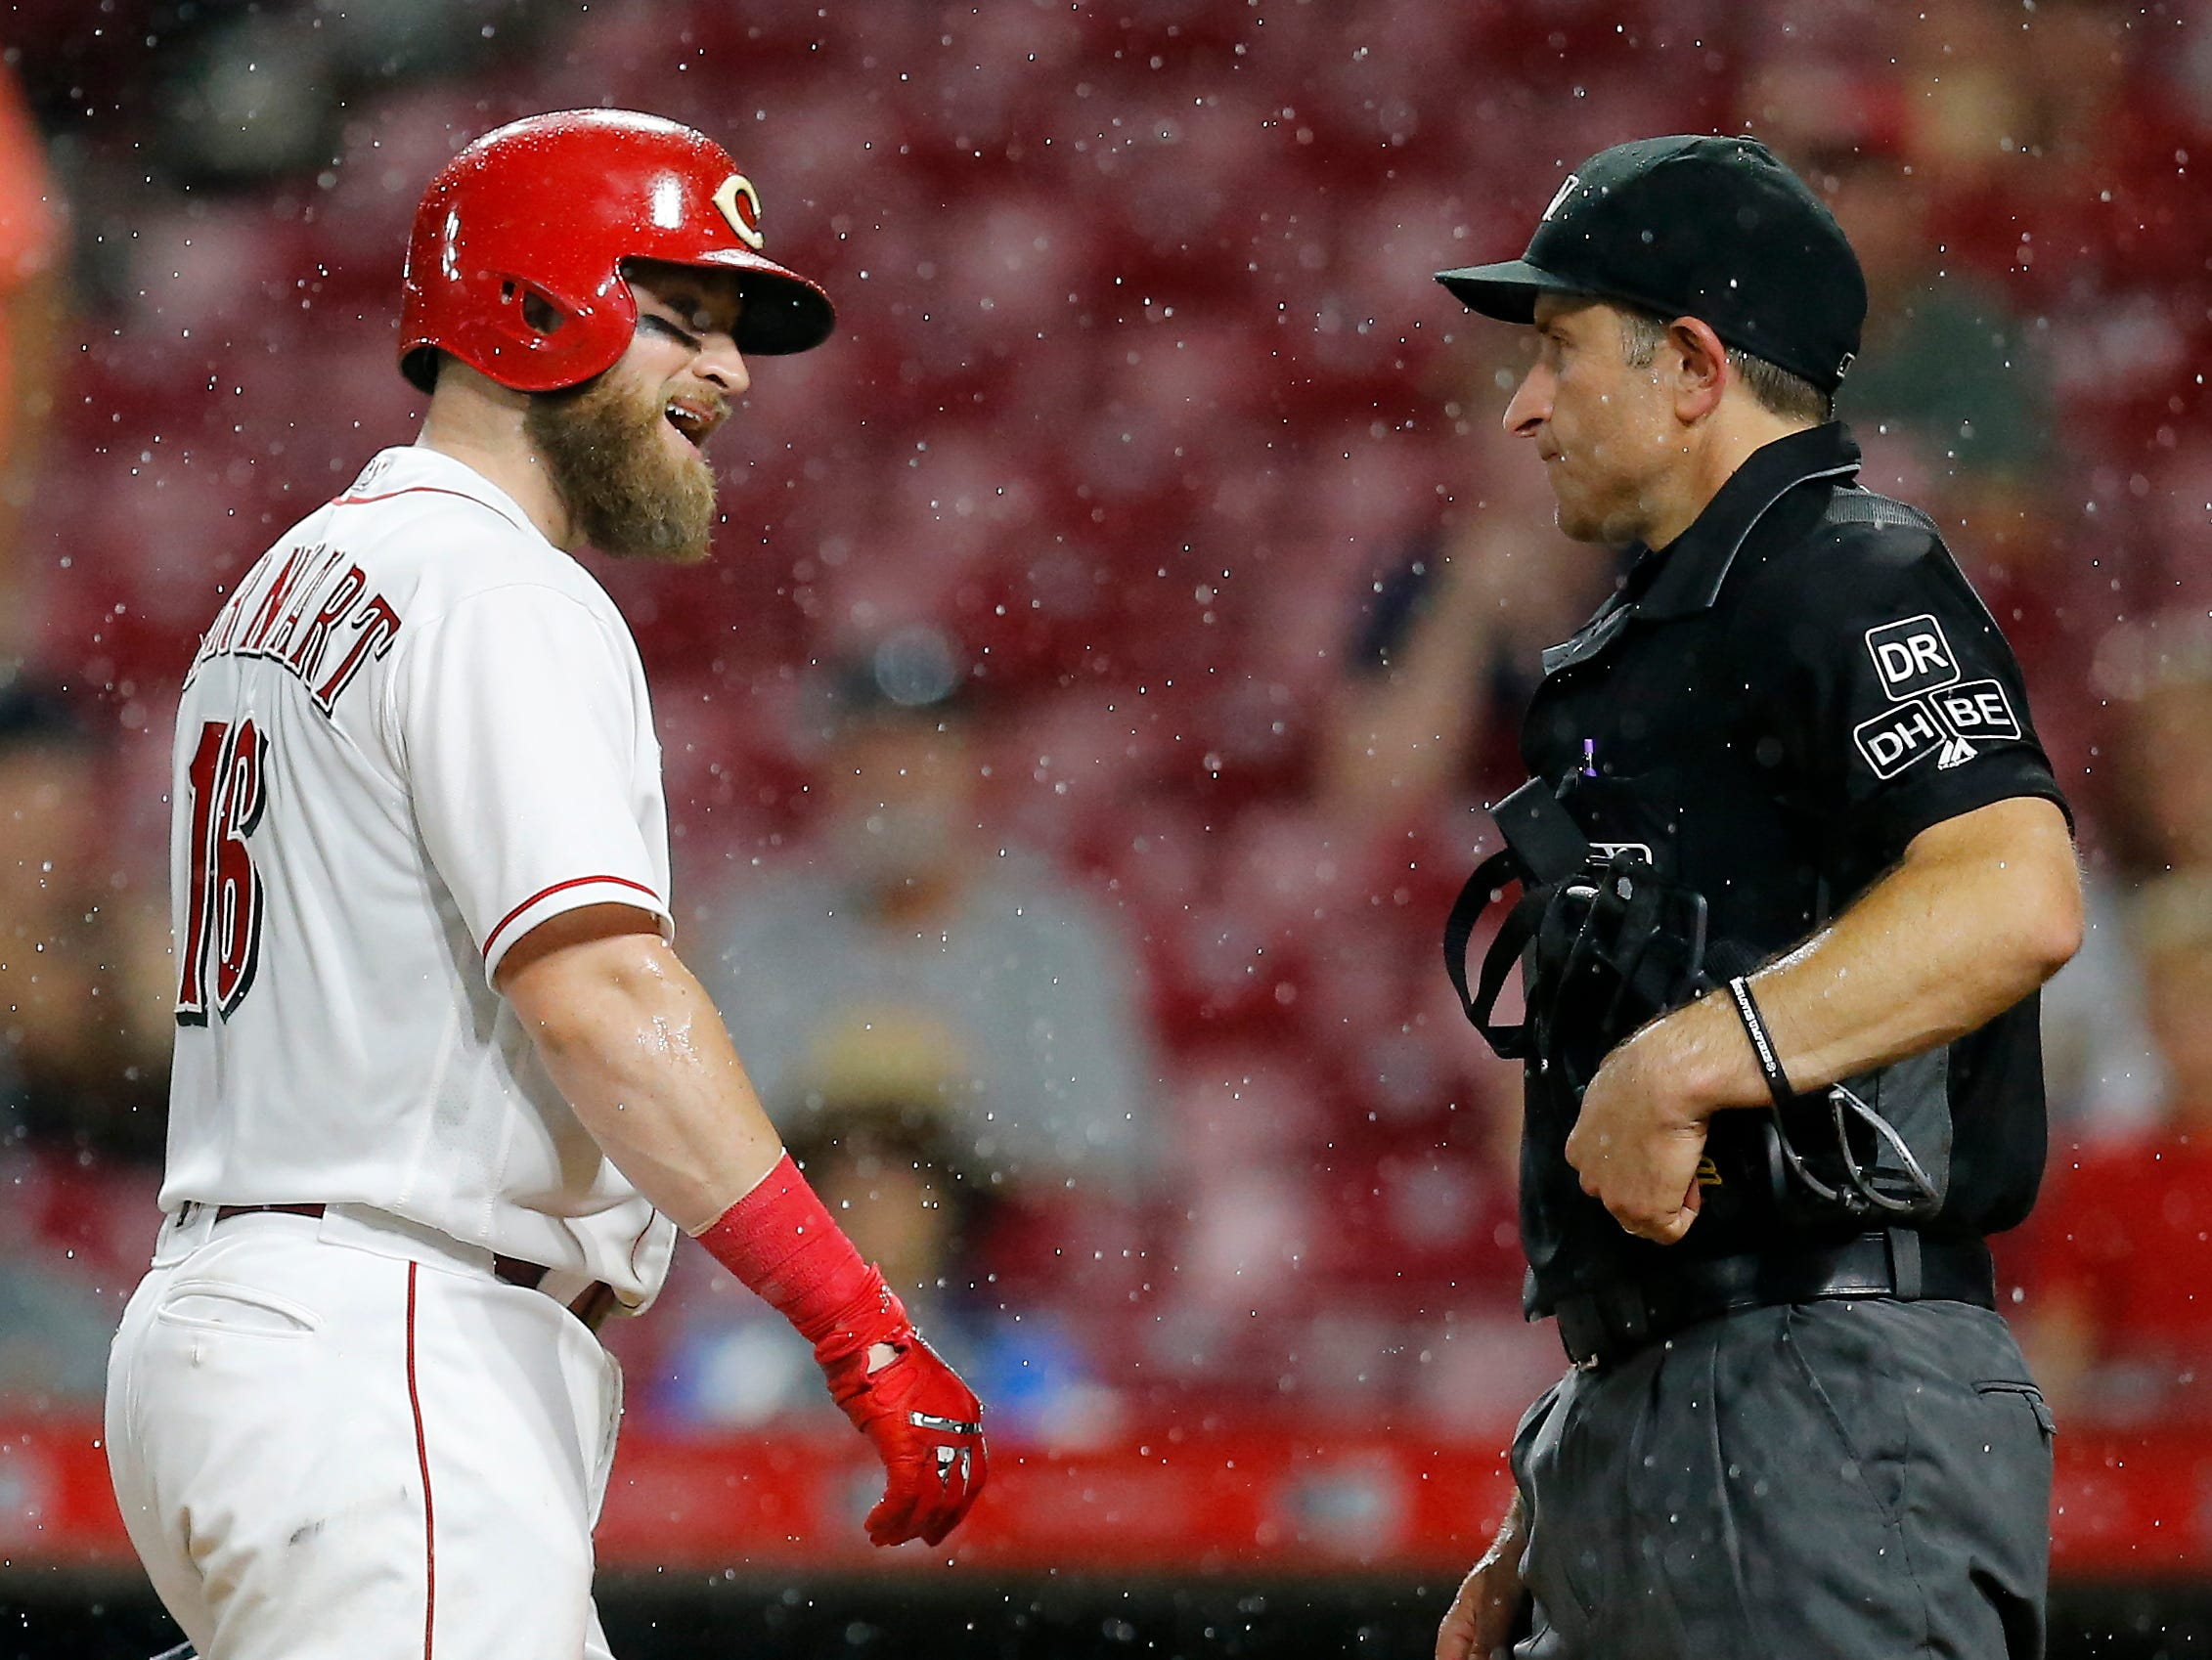 Cincinnati Reds catcher Tucker Barnhart (16) argues again with umpire Chris Guccione (68) on a strike out call in the bottom of the sixth inning of the MLB National League game between the Cincinnati Reds and the Philadelphia Phillies at Great American Ball Park in downtown Cincinnati on Thursday, July 26, 2018. The Reds lost 9-4.